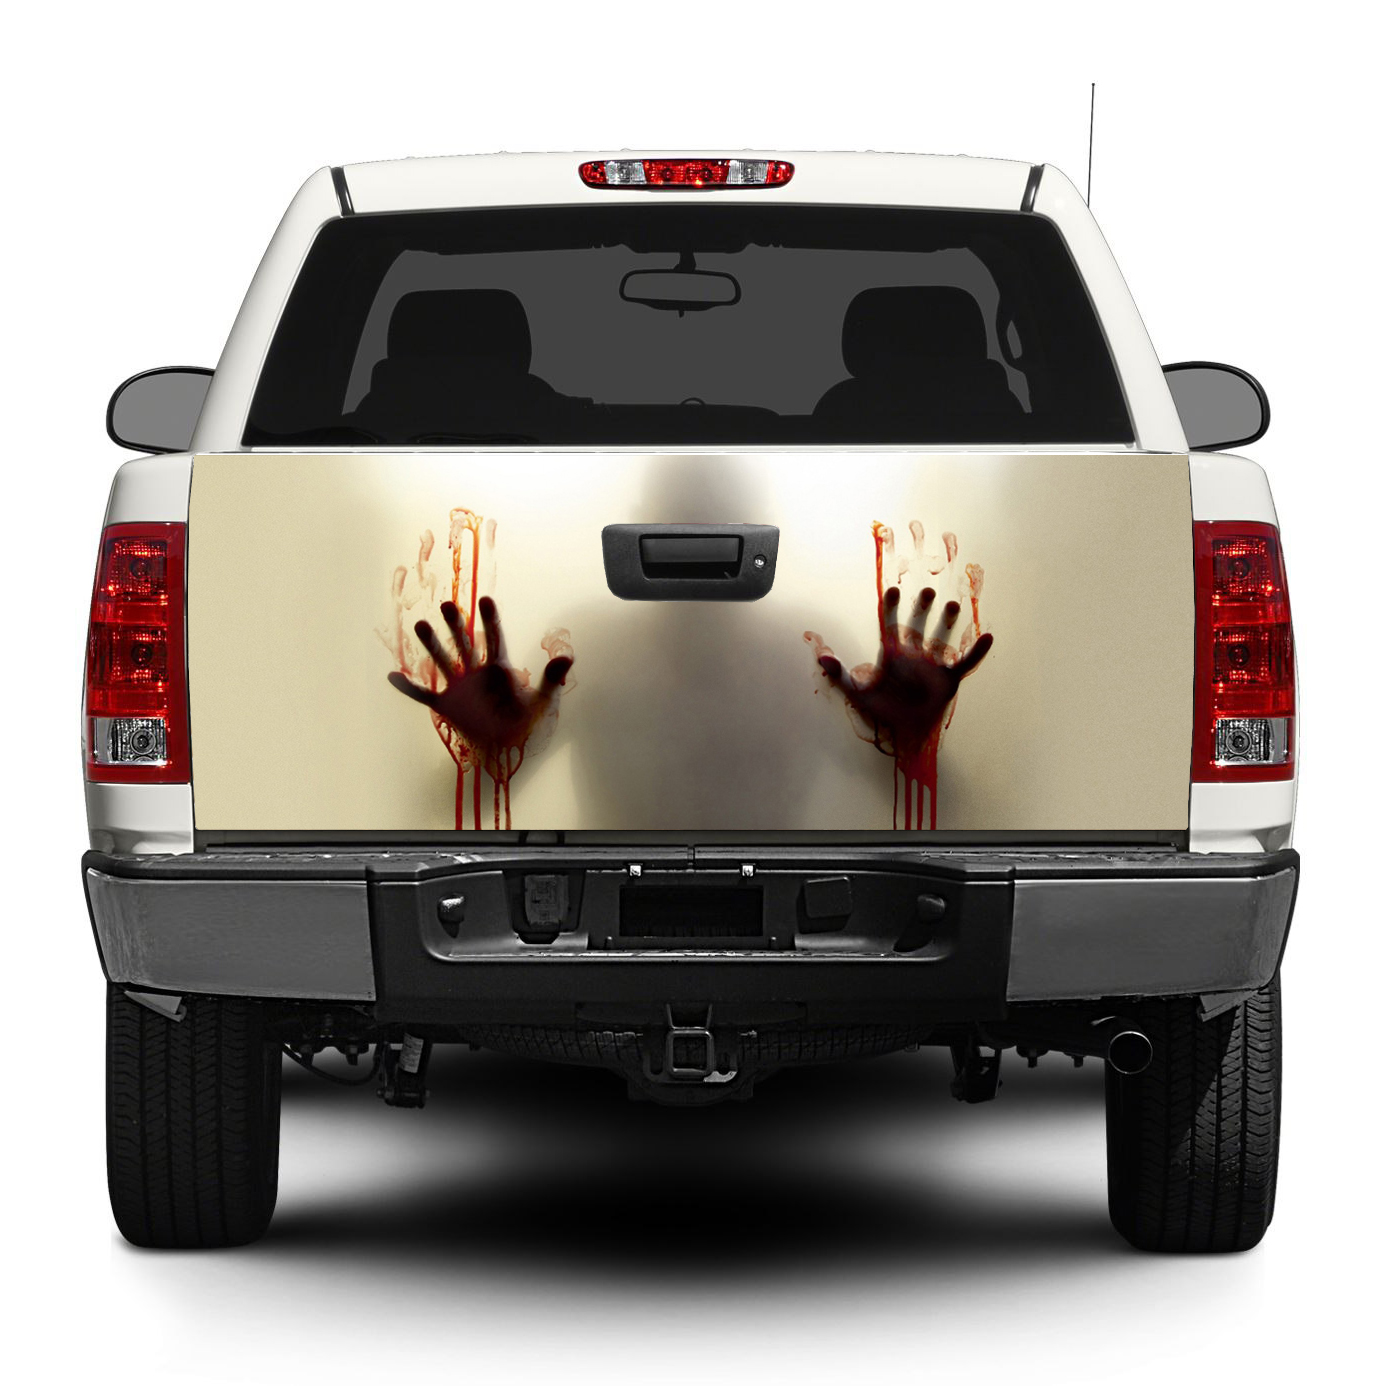 Zombie blood help tailgate decal sticker wrap pick up truck suv car